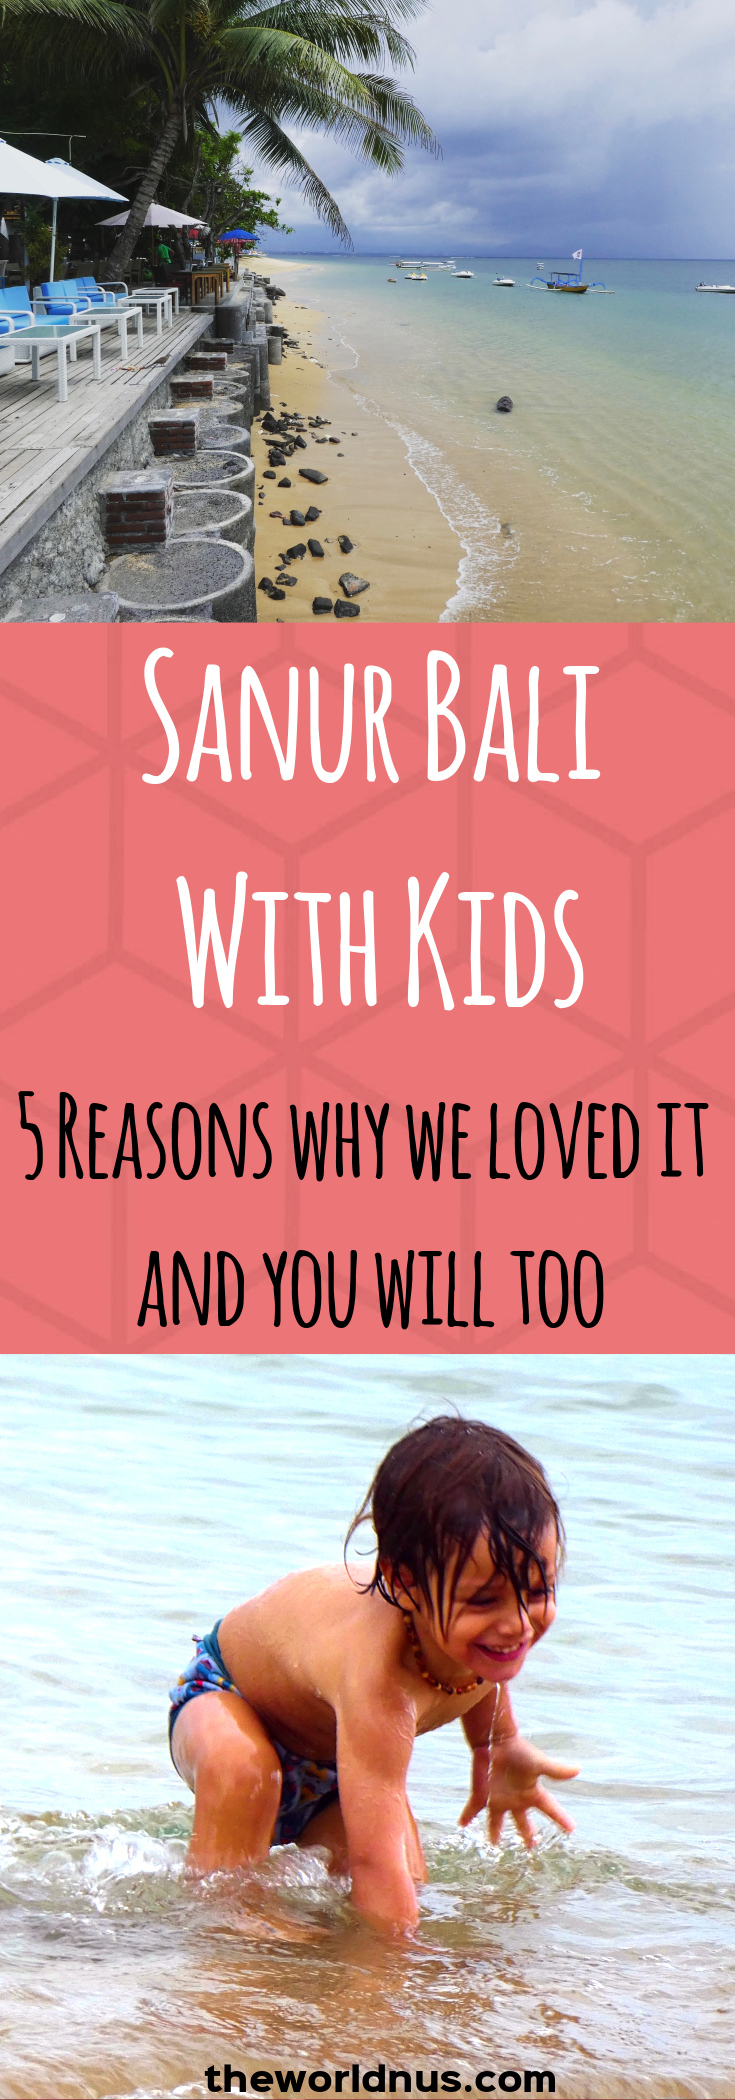 Travel with kids // Sanur Bali With Kids // If you are thinking of heading to Bali with a baby or toddler, then read along! Here we give you the scoop on Sanur Bali with kids and the five reasons why we loved it and you will too.